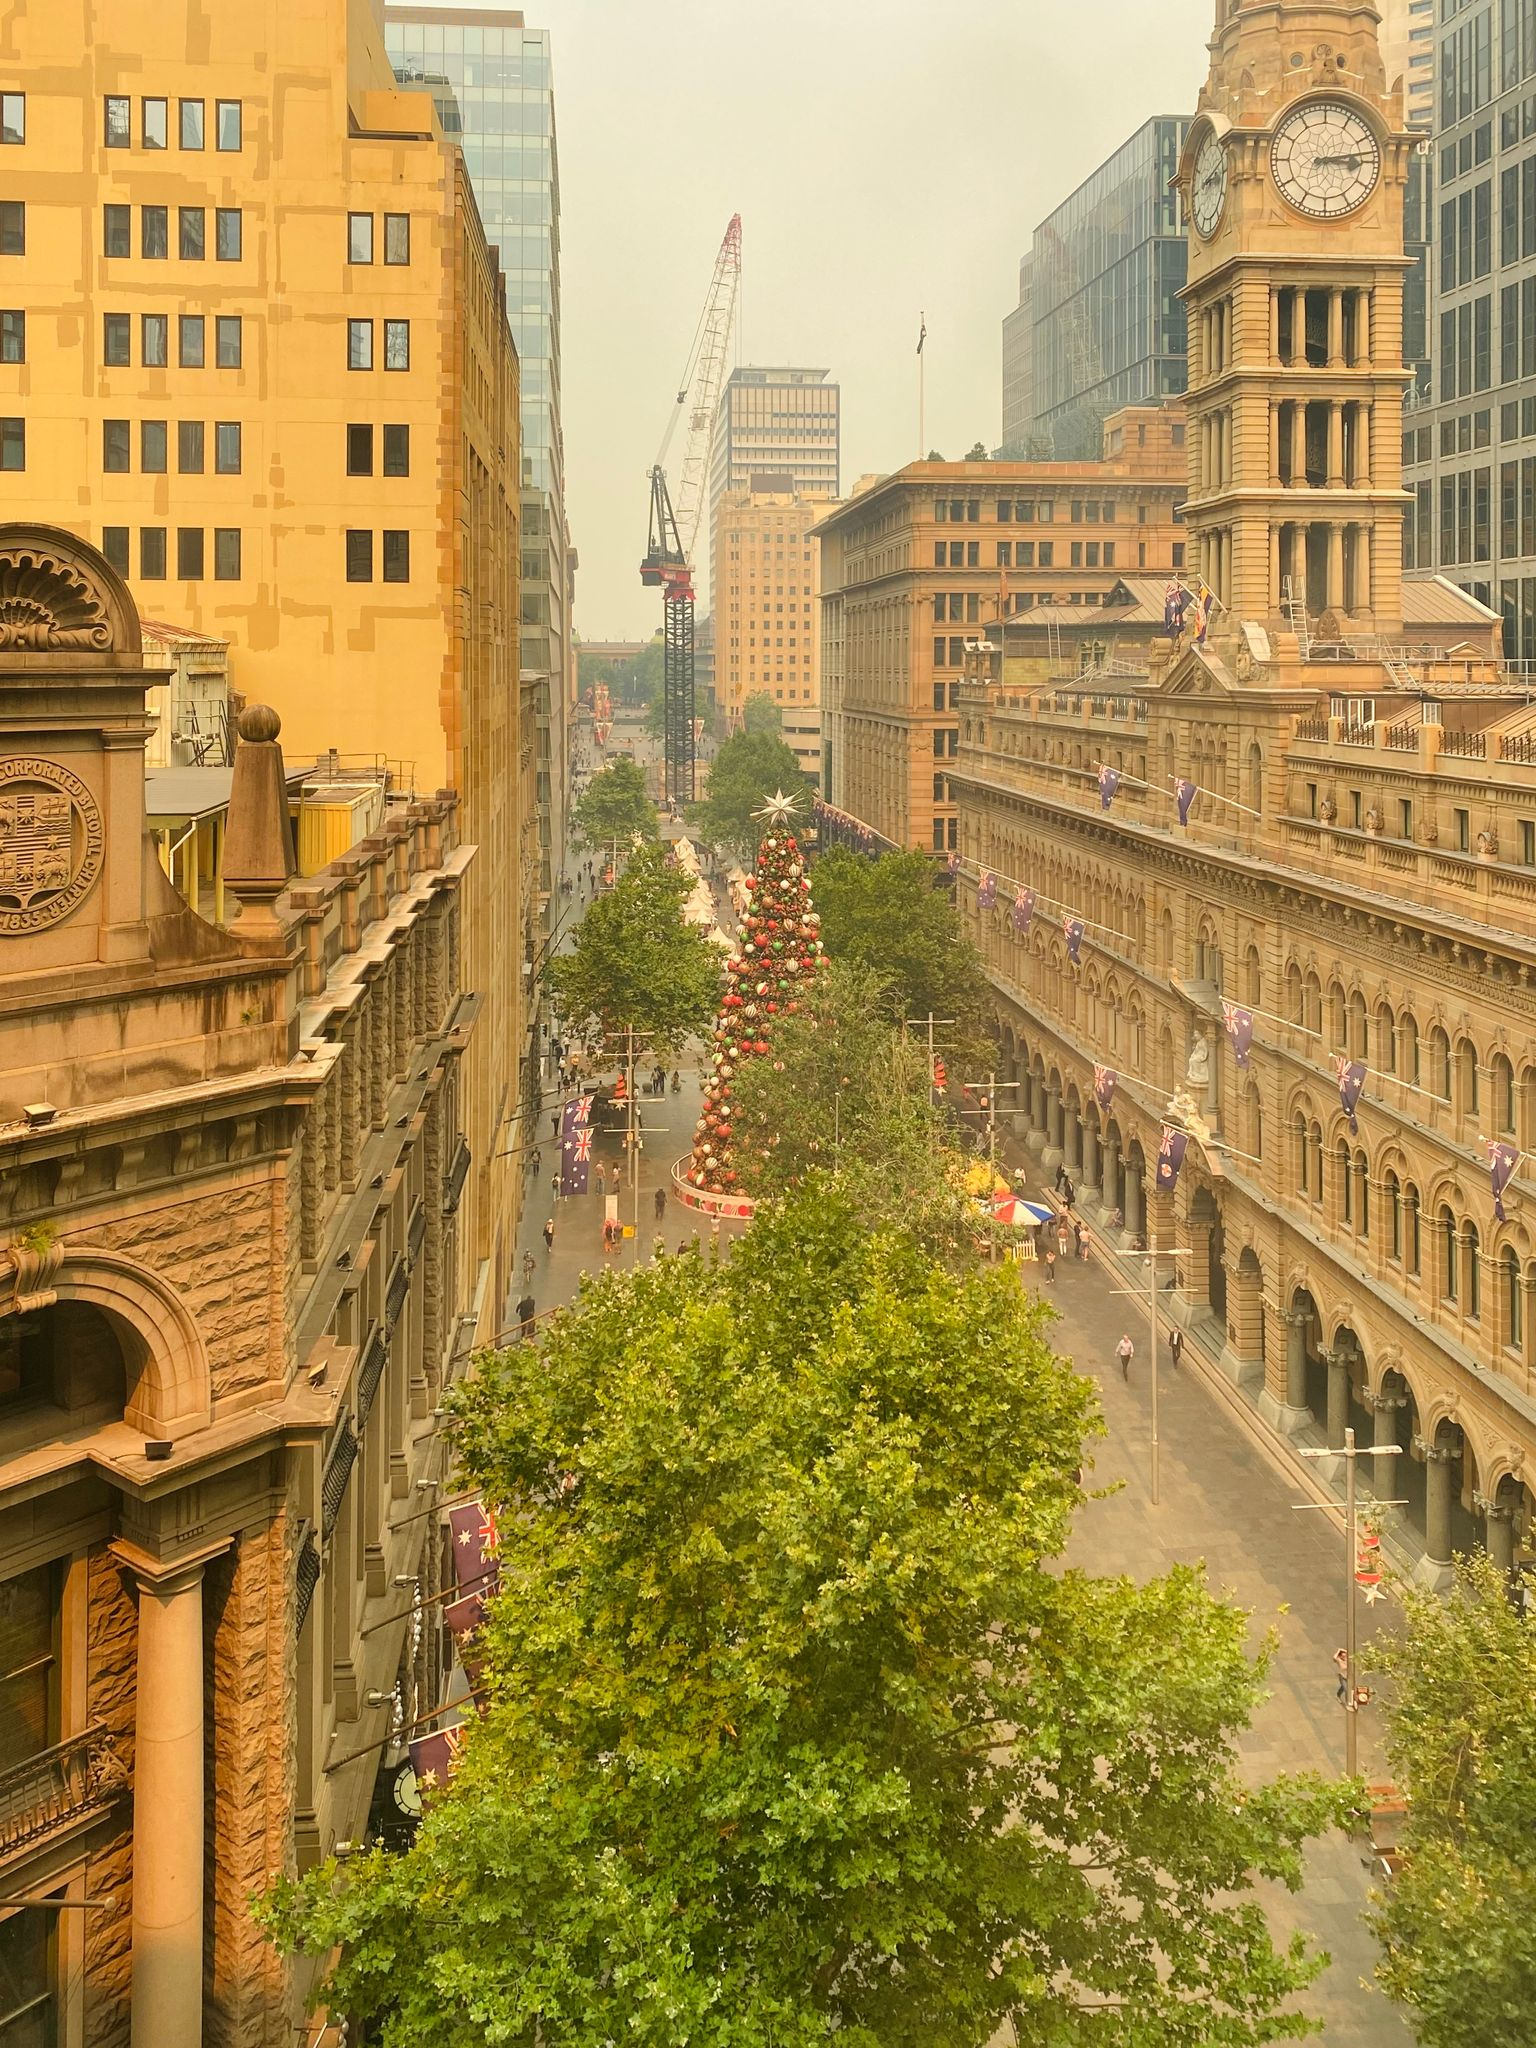 A view up Martin Place in Sydney's CBD taken from the 5th floor of a building. There's a big green tree at the bottom of the photo, tall buildings on either side, and the whole scene is bathed in a yellow light.